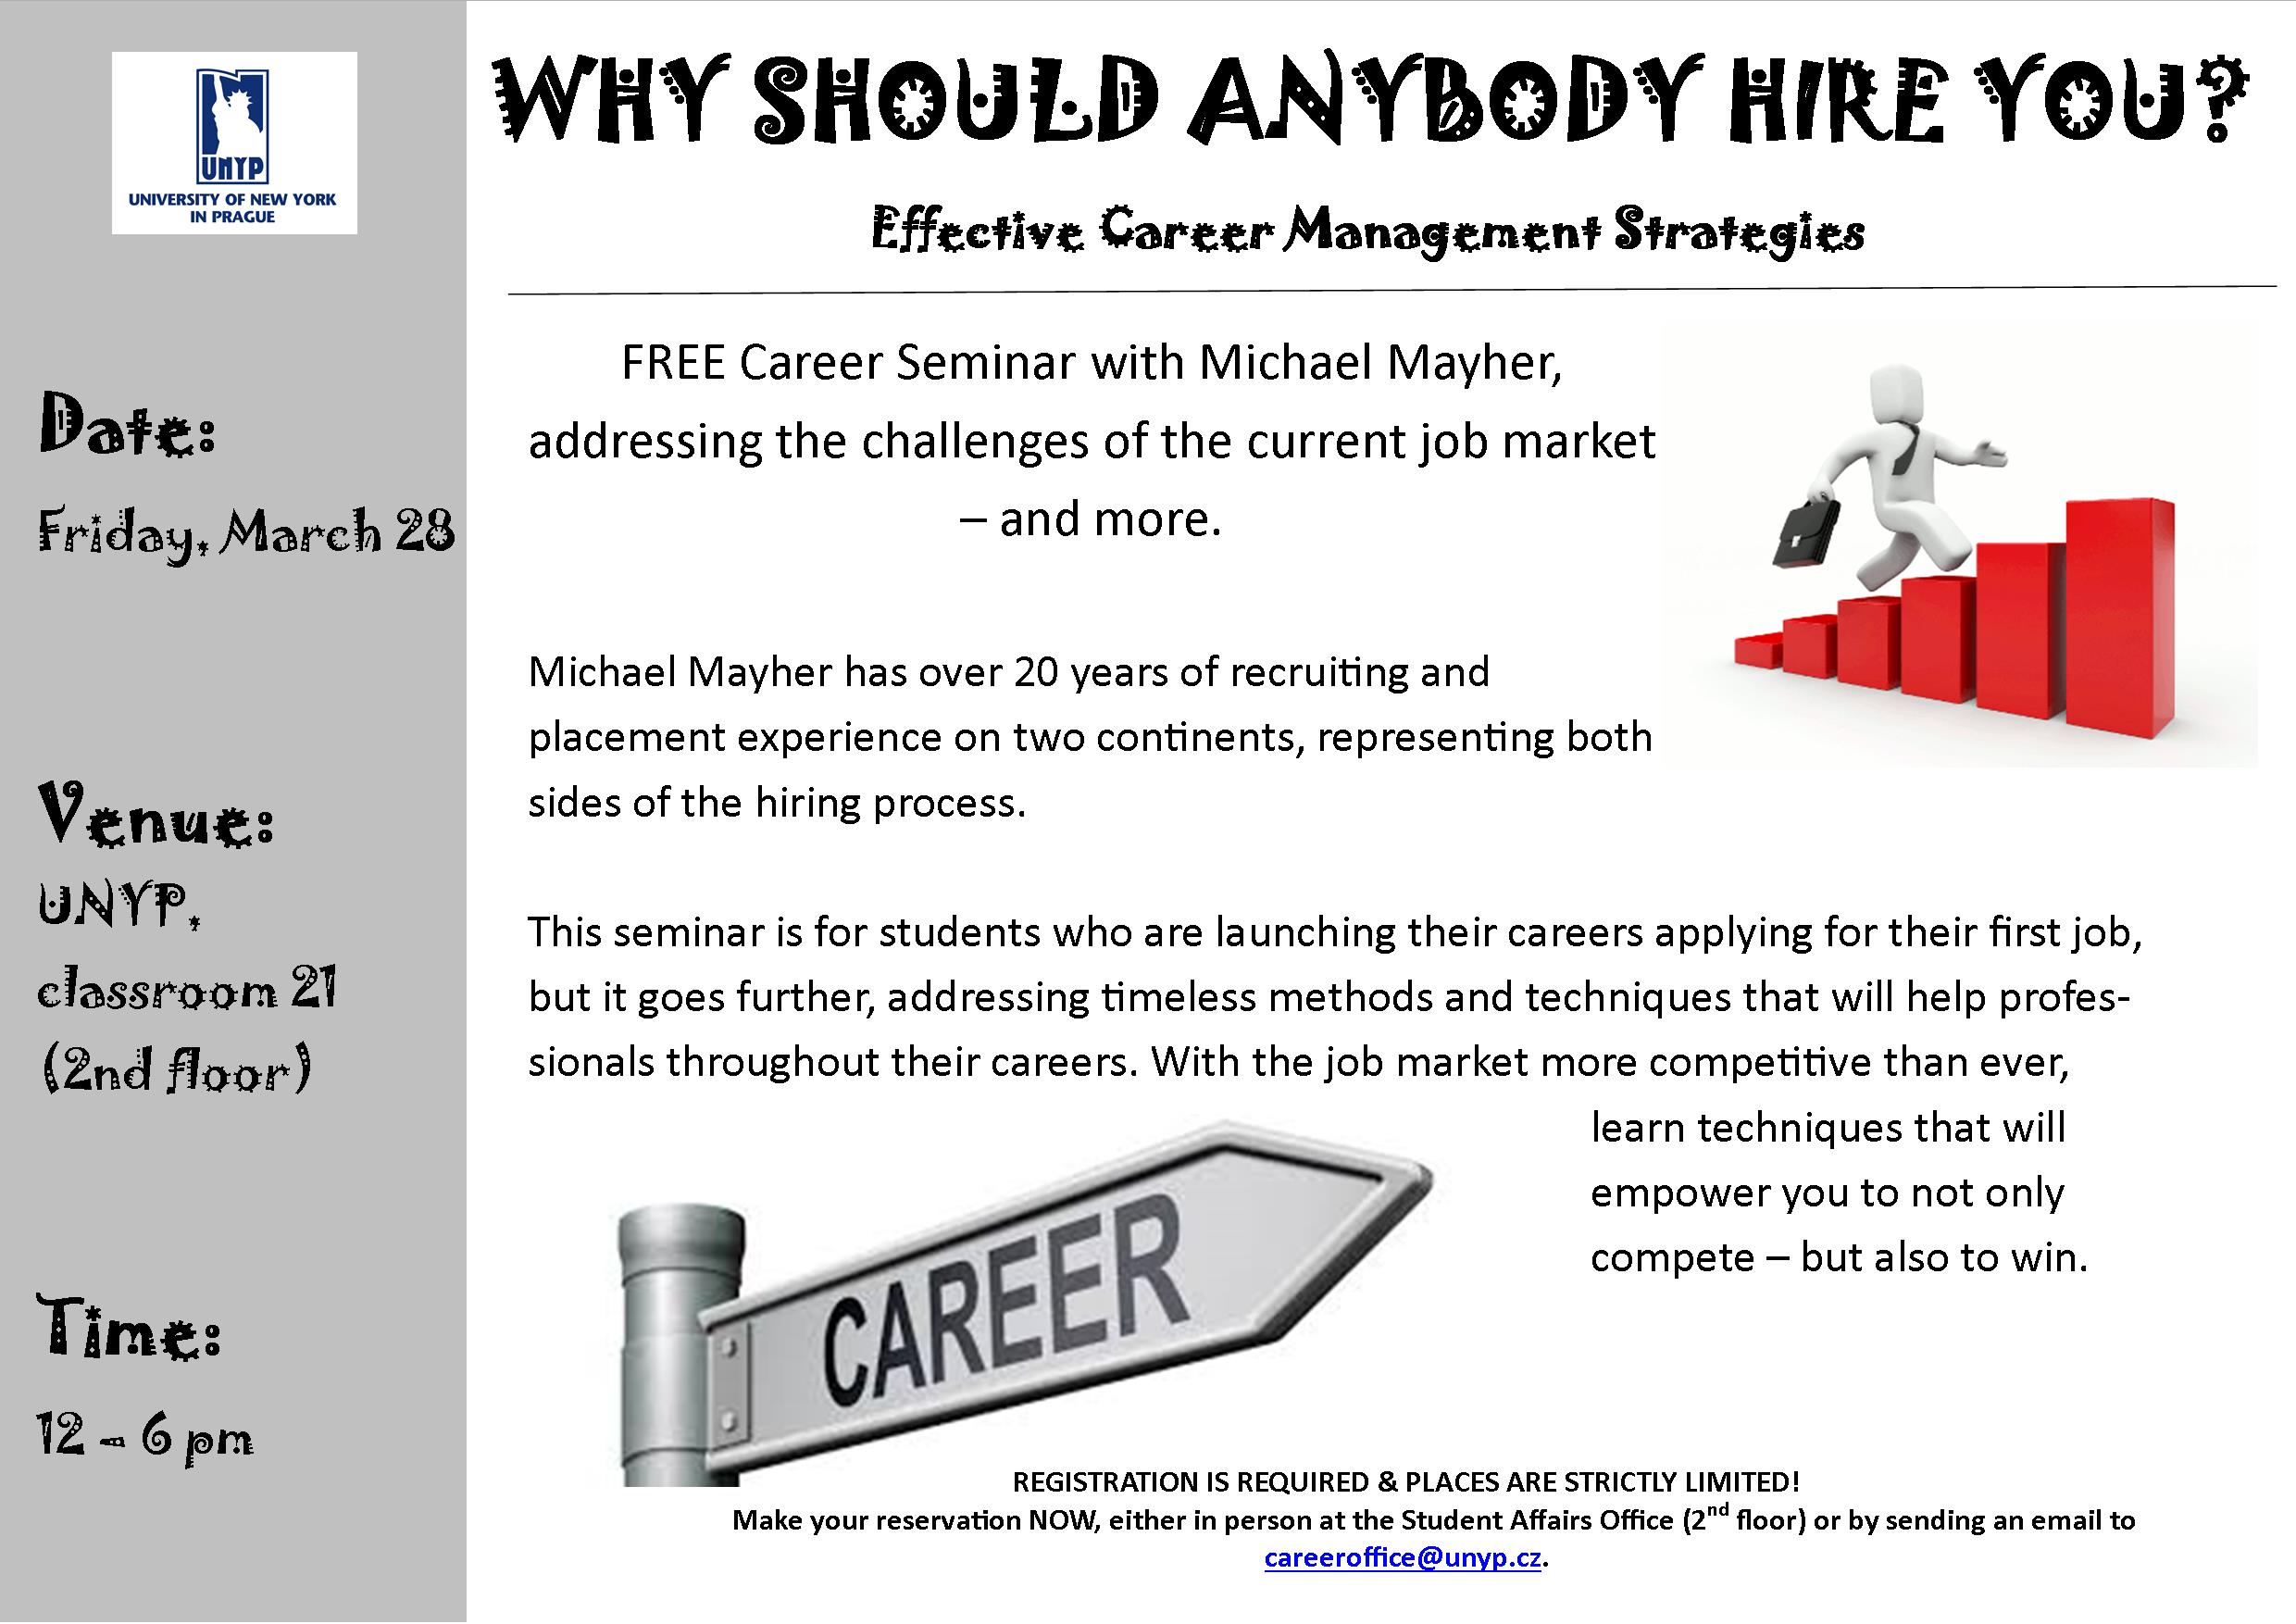 Invitation To A Free Career Seminar By Michael Mayher University Of New York In Prague